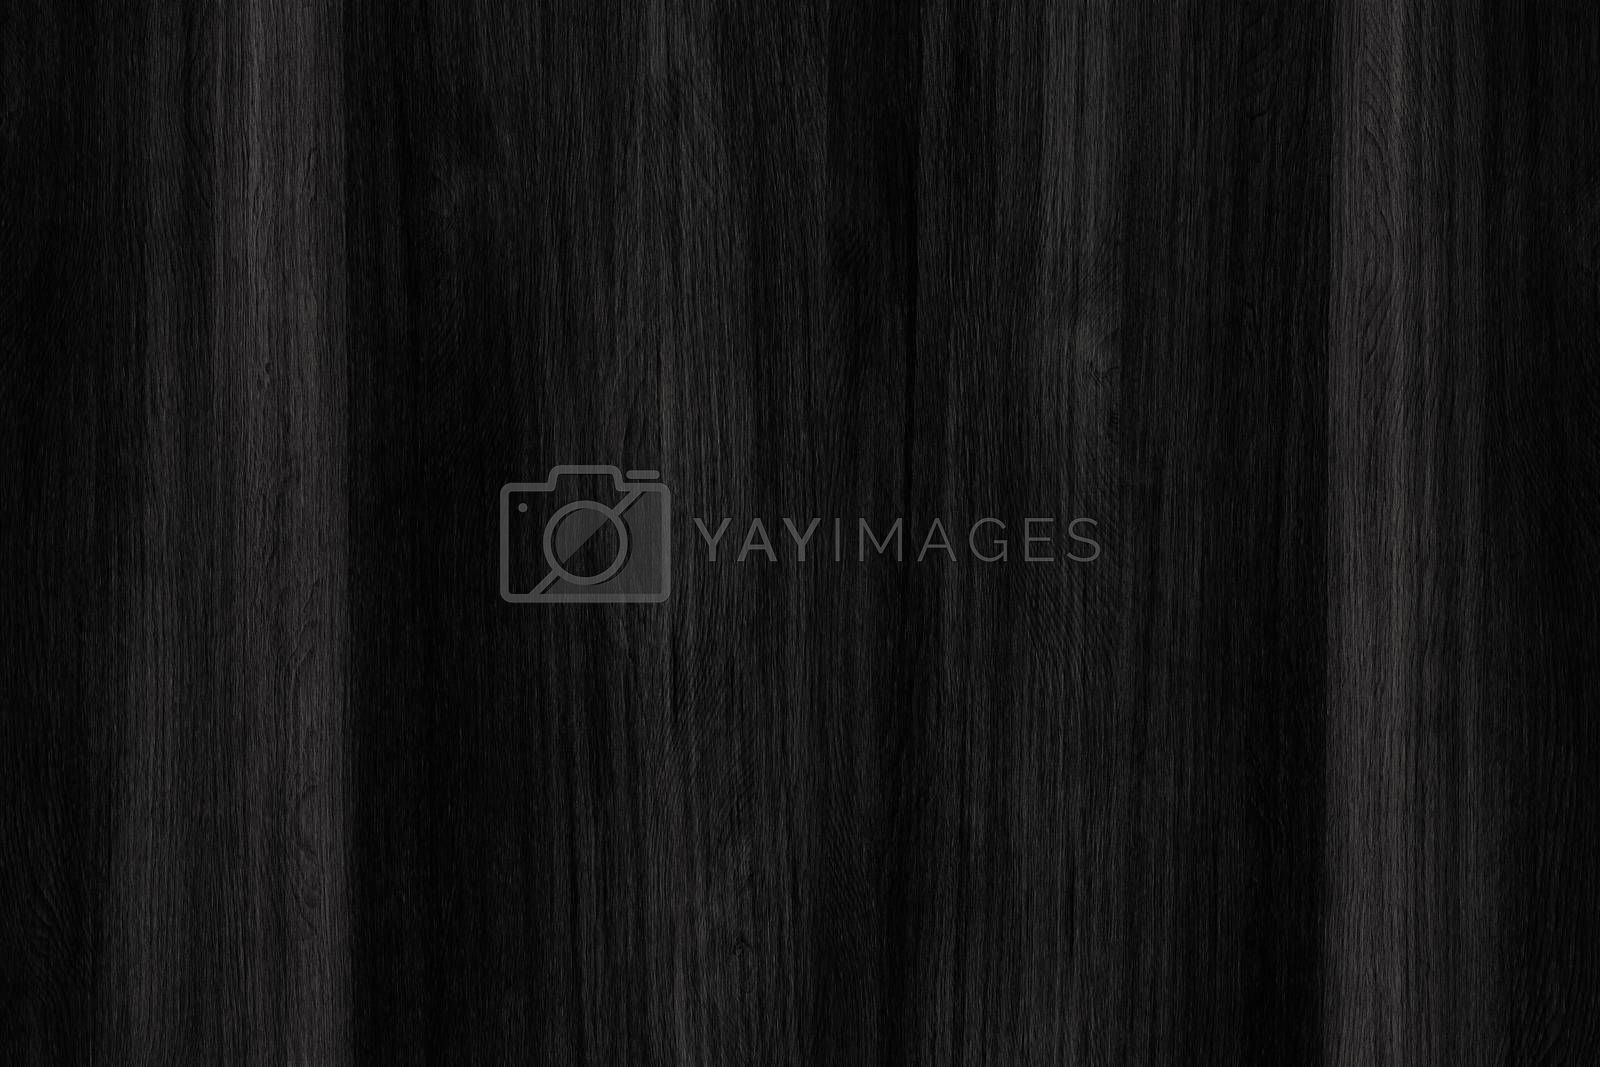 black grunge wooden texture to use as background, wood texture with natural dark pattern